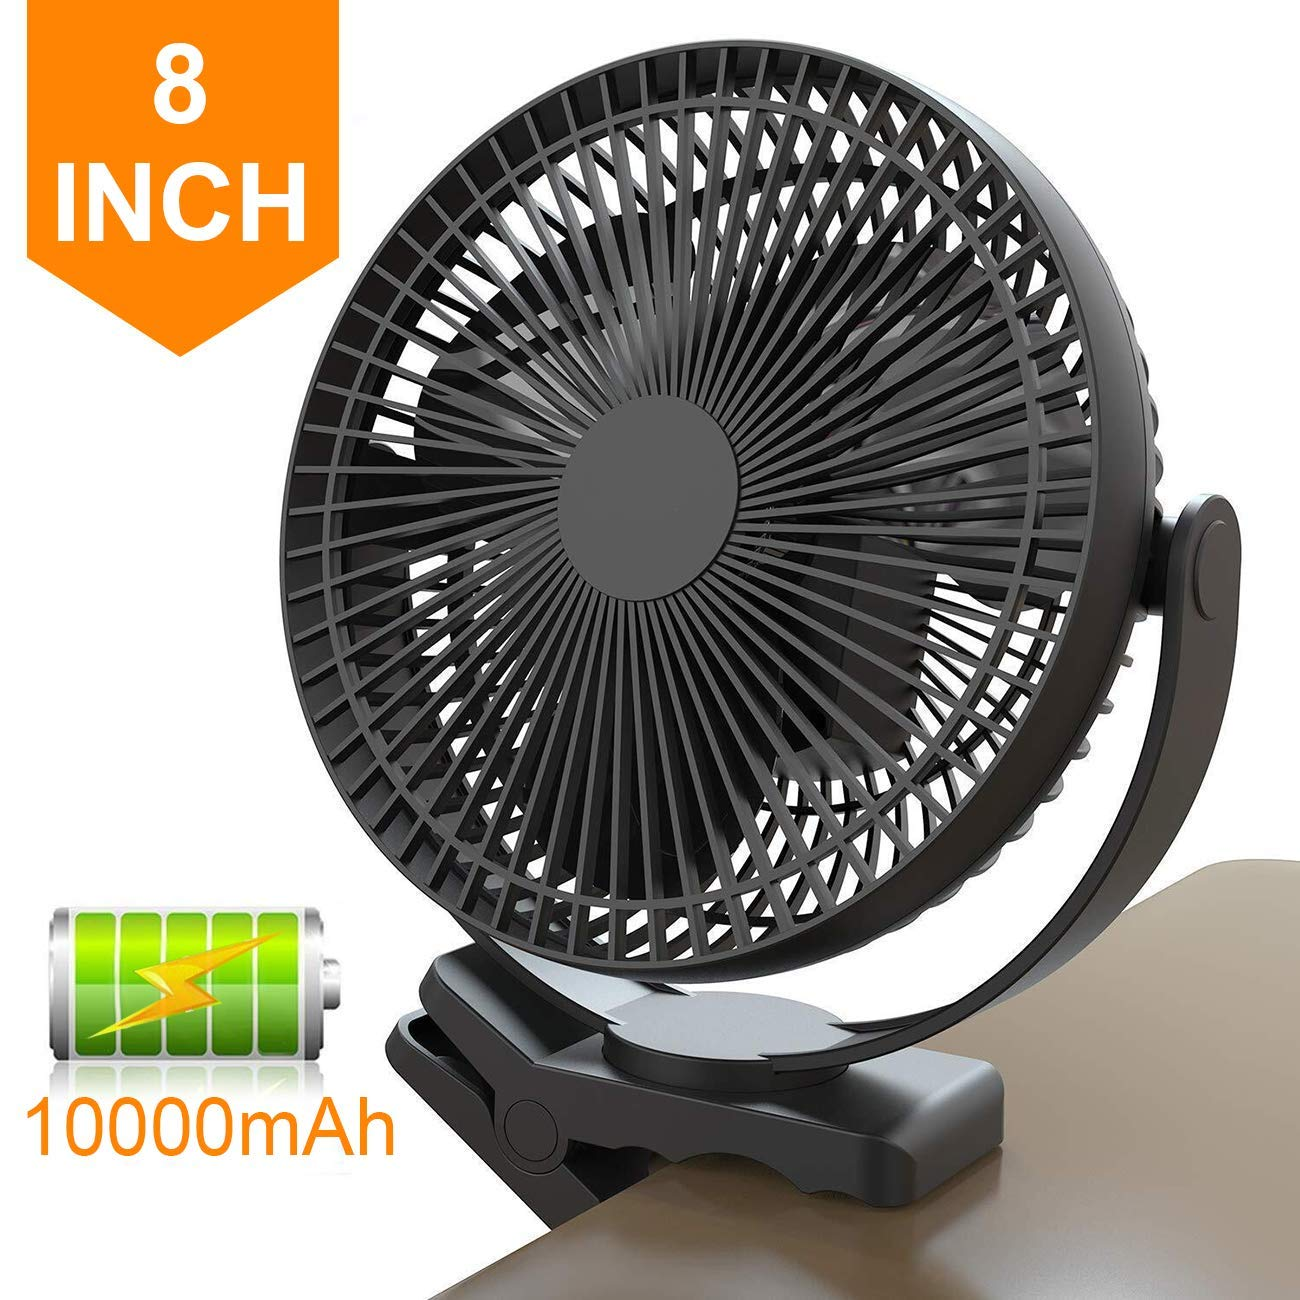 10000mAh 8 Inch Battery Operated Clip on Fan, Rechargeable Fan for Baby, 4 Speeds & 10W Fast Charging, Portable Cooling USB Fan for Baby Stroller Golf Cart Car Gym Treadmill,2 in 1 Desk&Clip Fan-Black